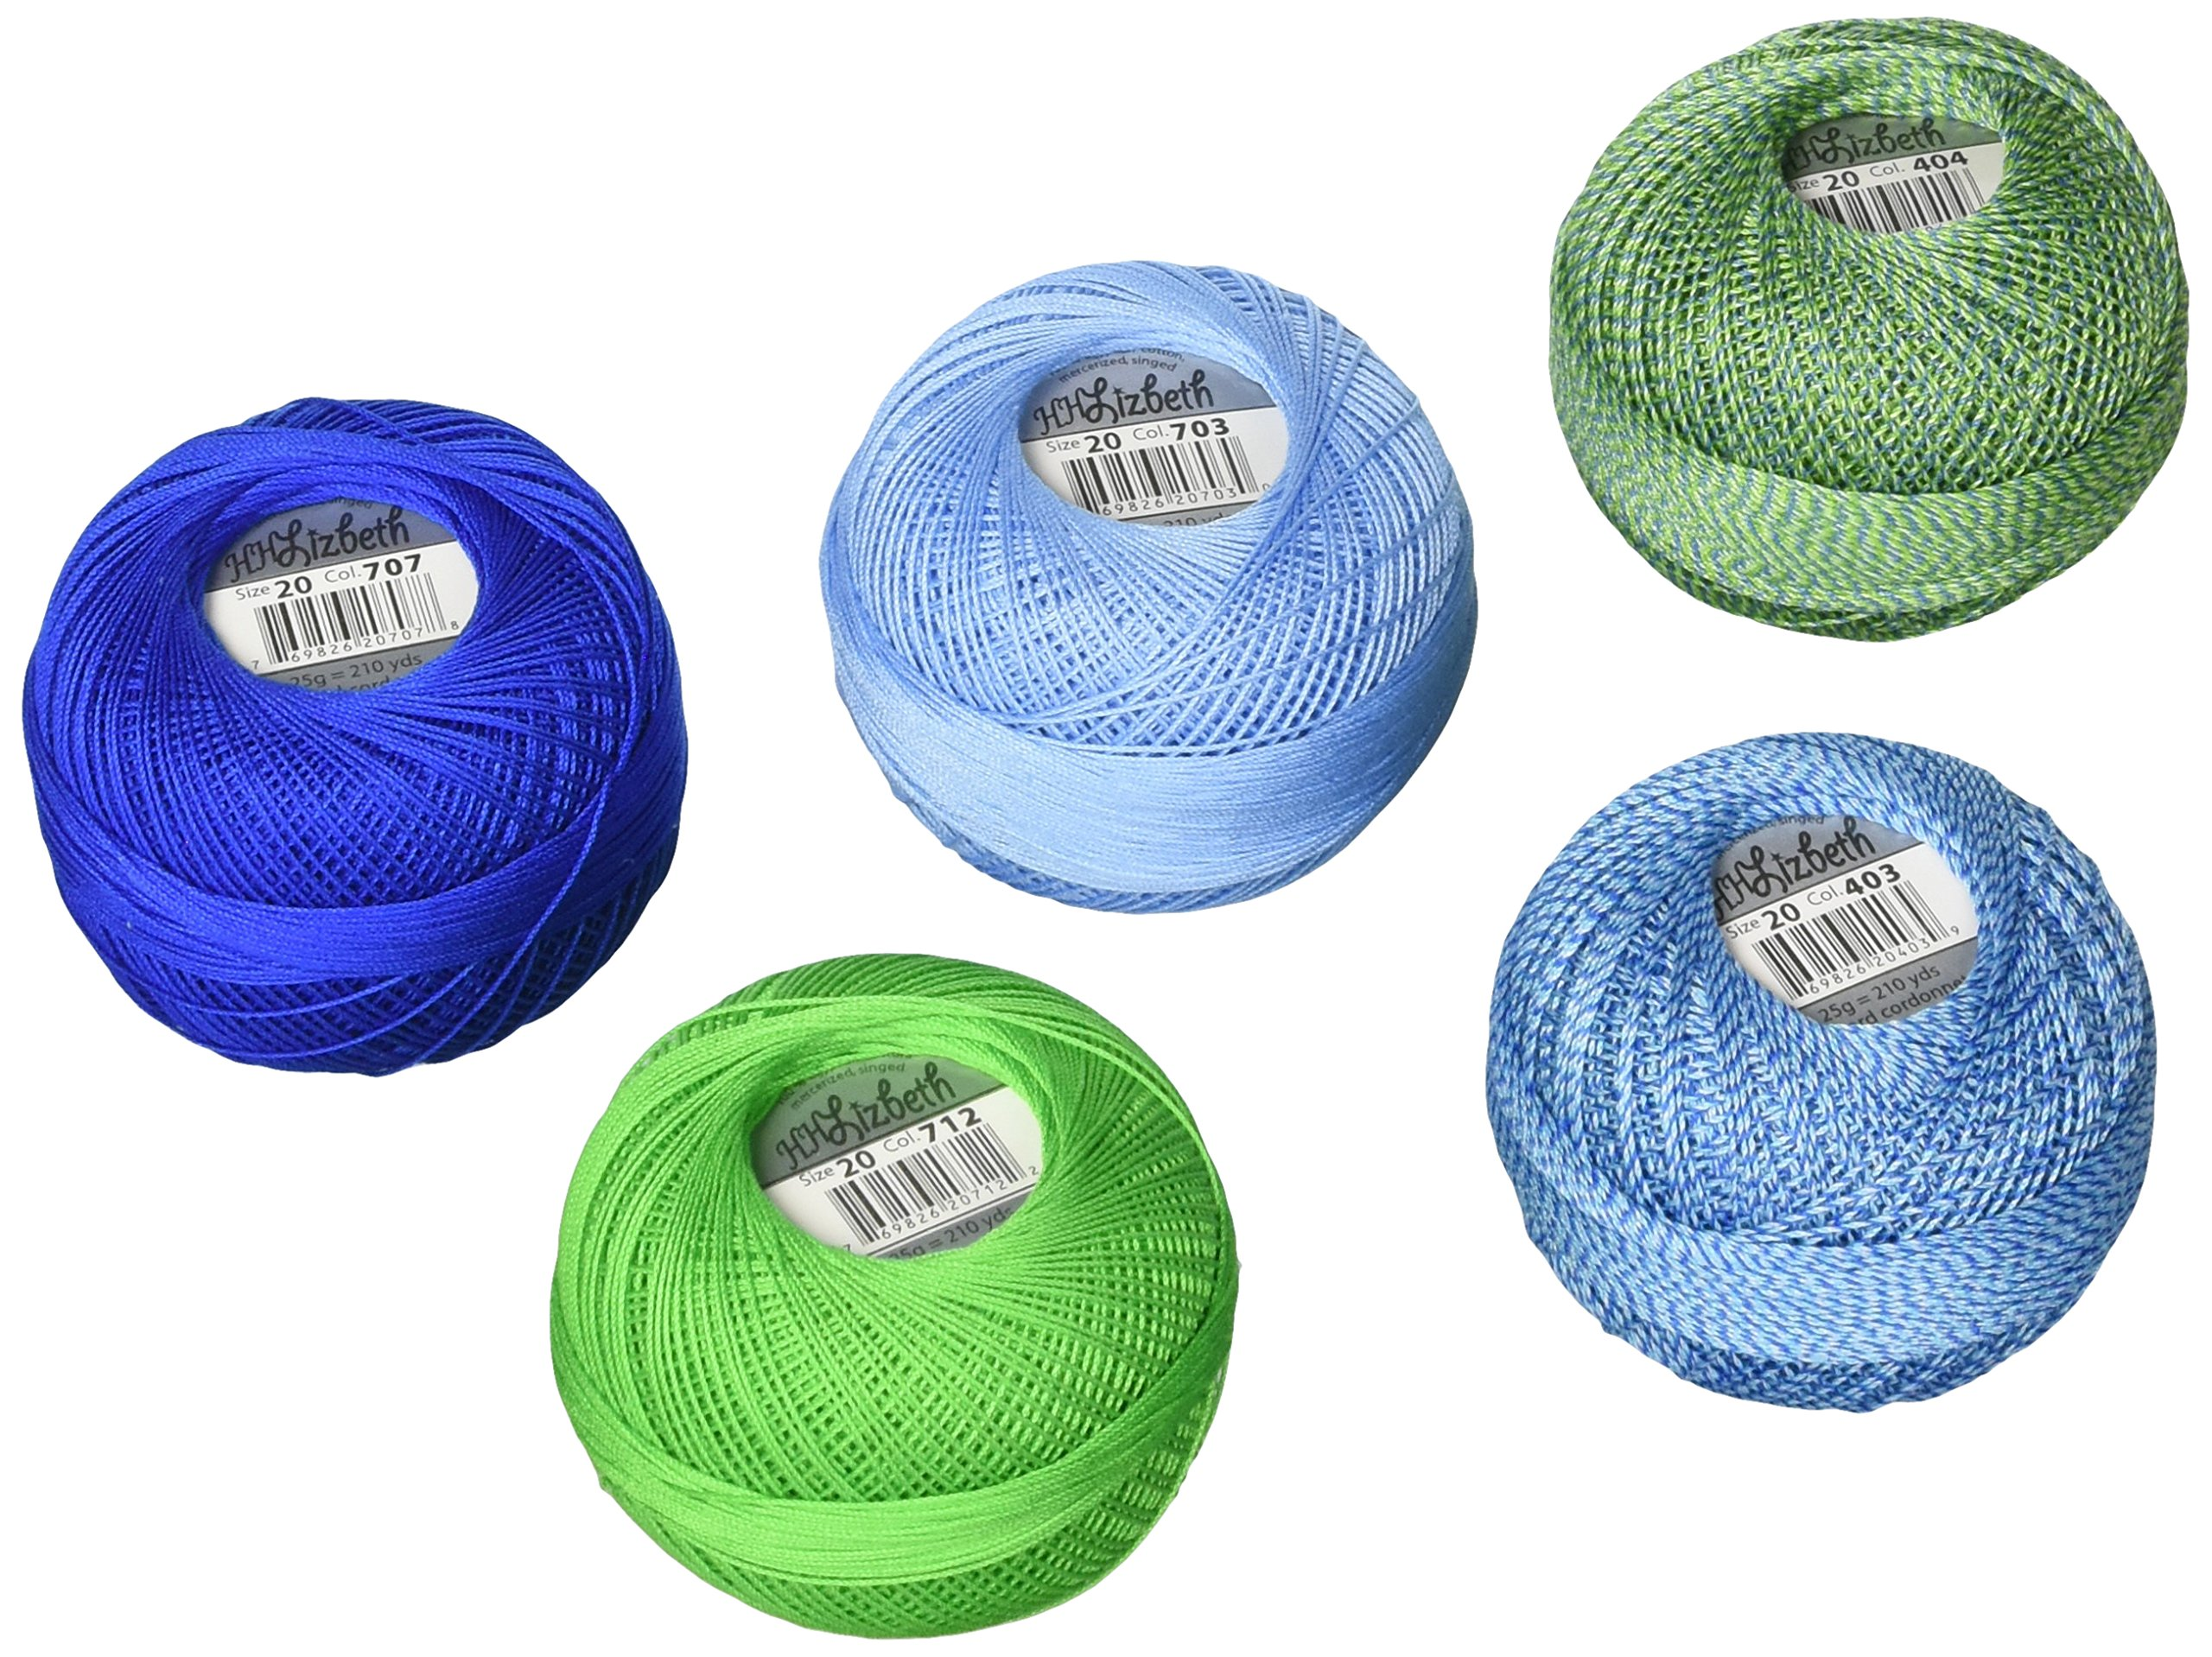 Handy Hands DPN-7221 Lizbeth Specialty Pack Cordonnet Cotton (5 Pack), Size 20, Lagoon Mix, Multicolor by Handy Hands (Image #1)